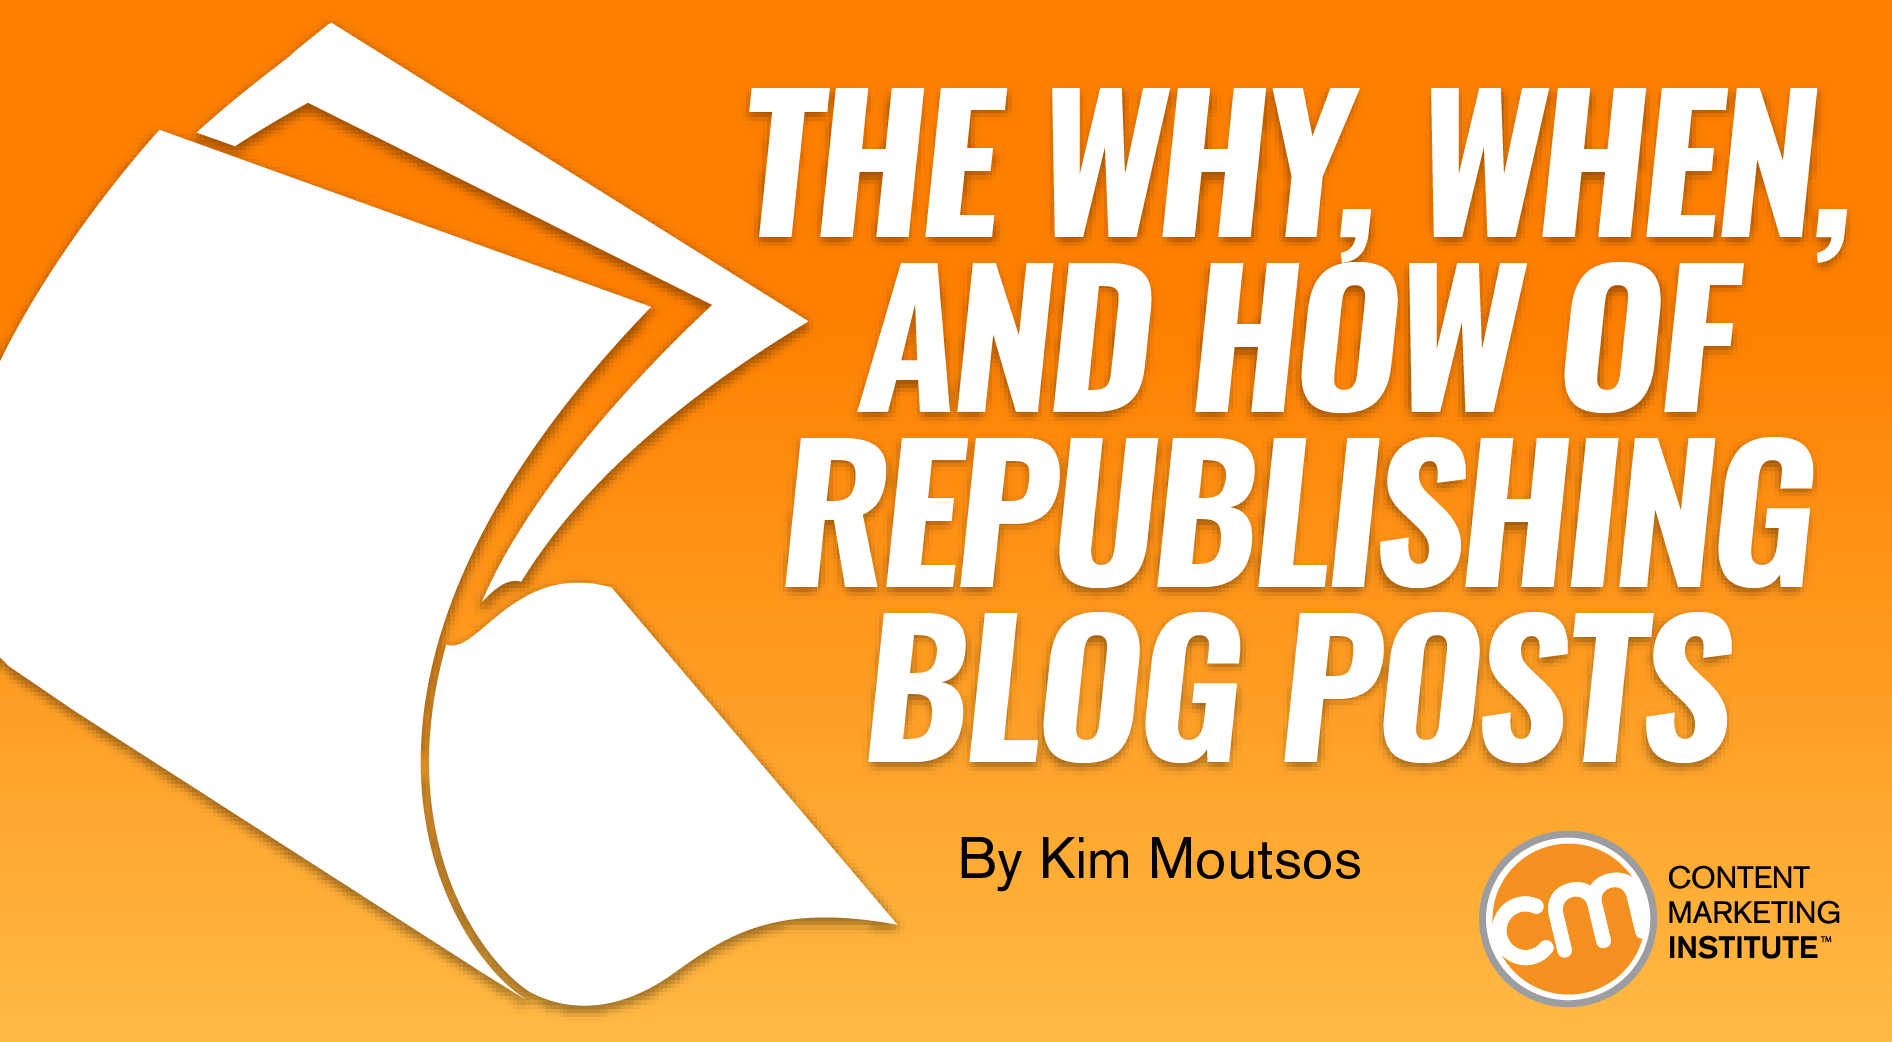 The Why, When, and How of Republishing Blog Posts